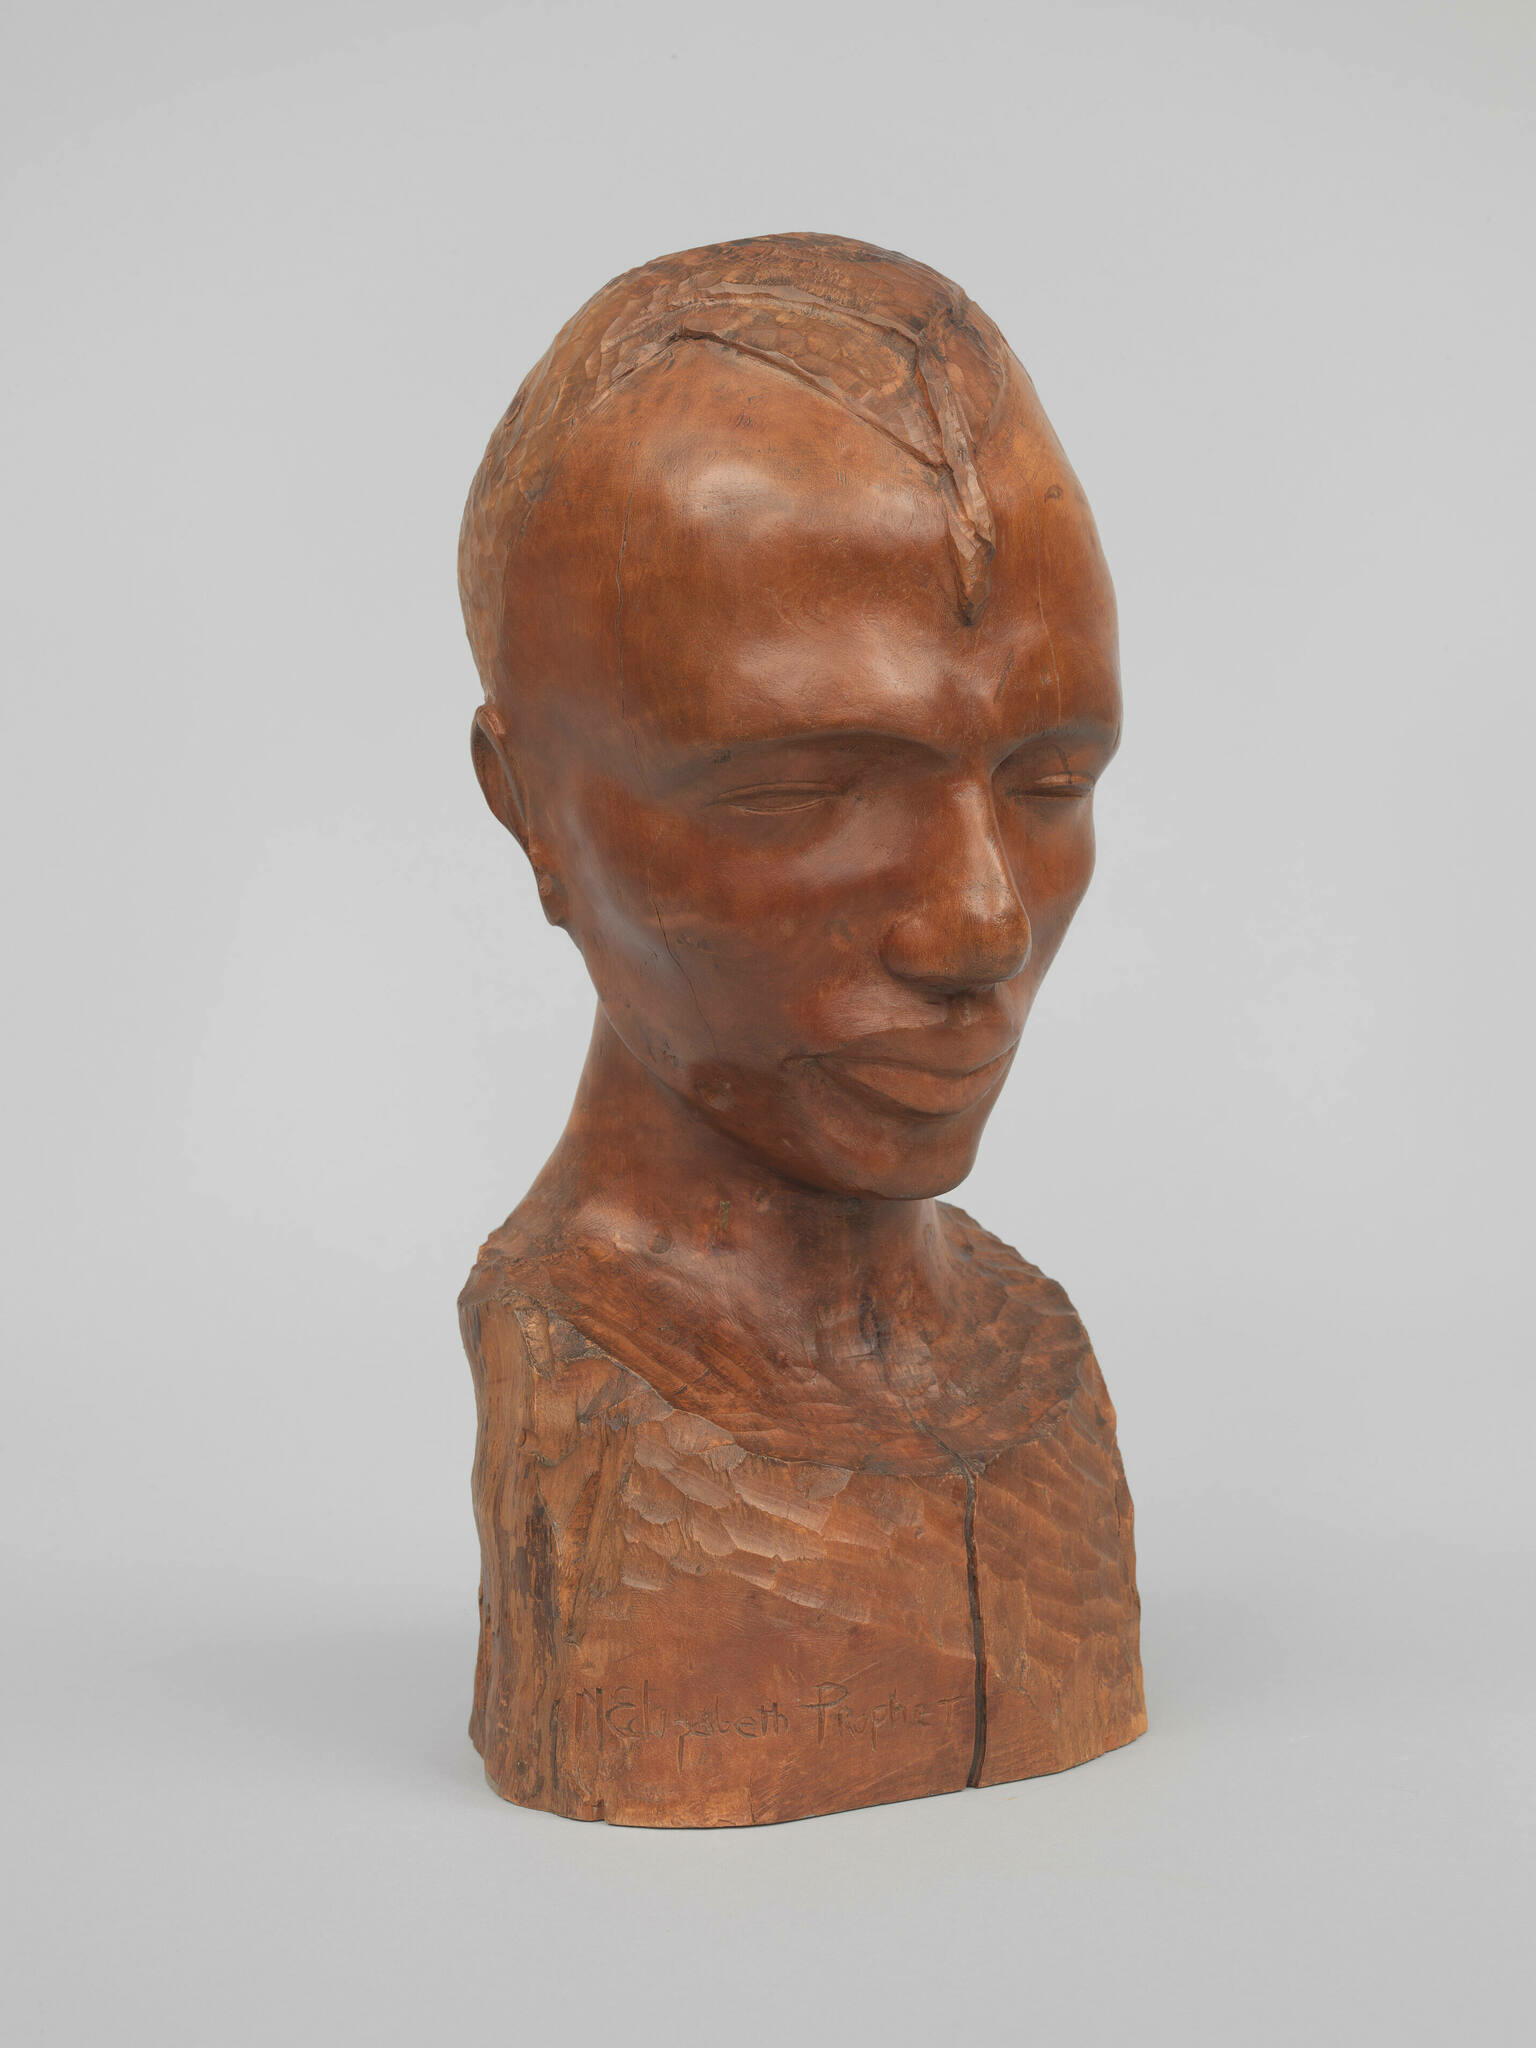 A cherry wood bust of a male head with closed eyes and upturned lips.